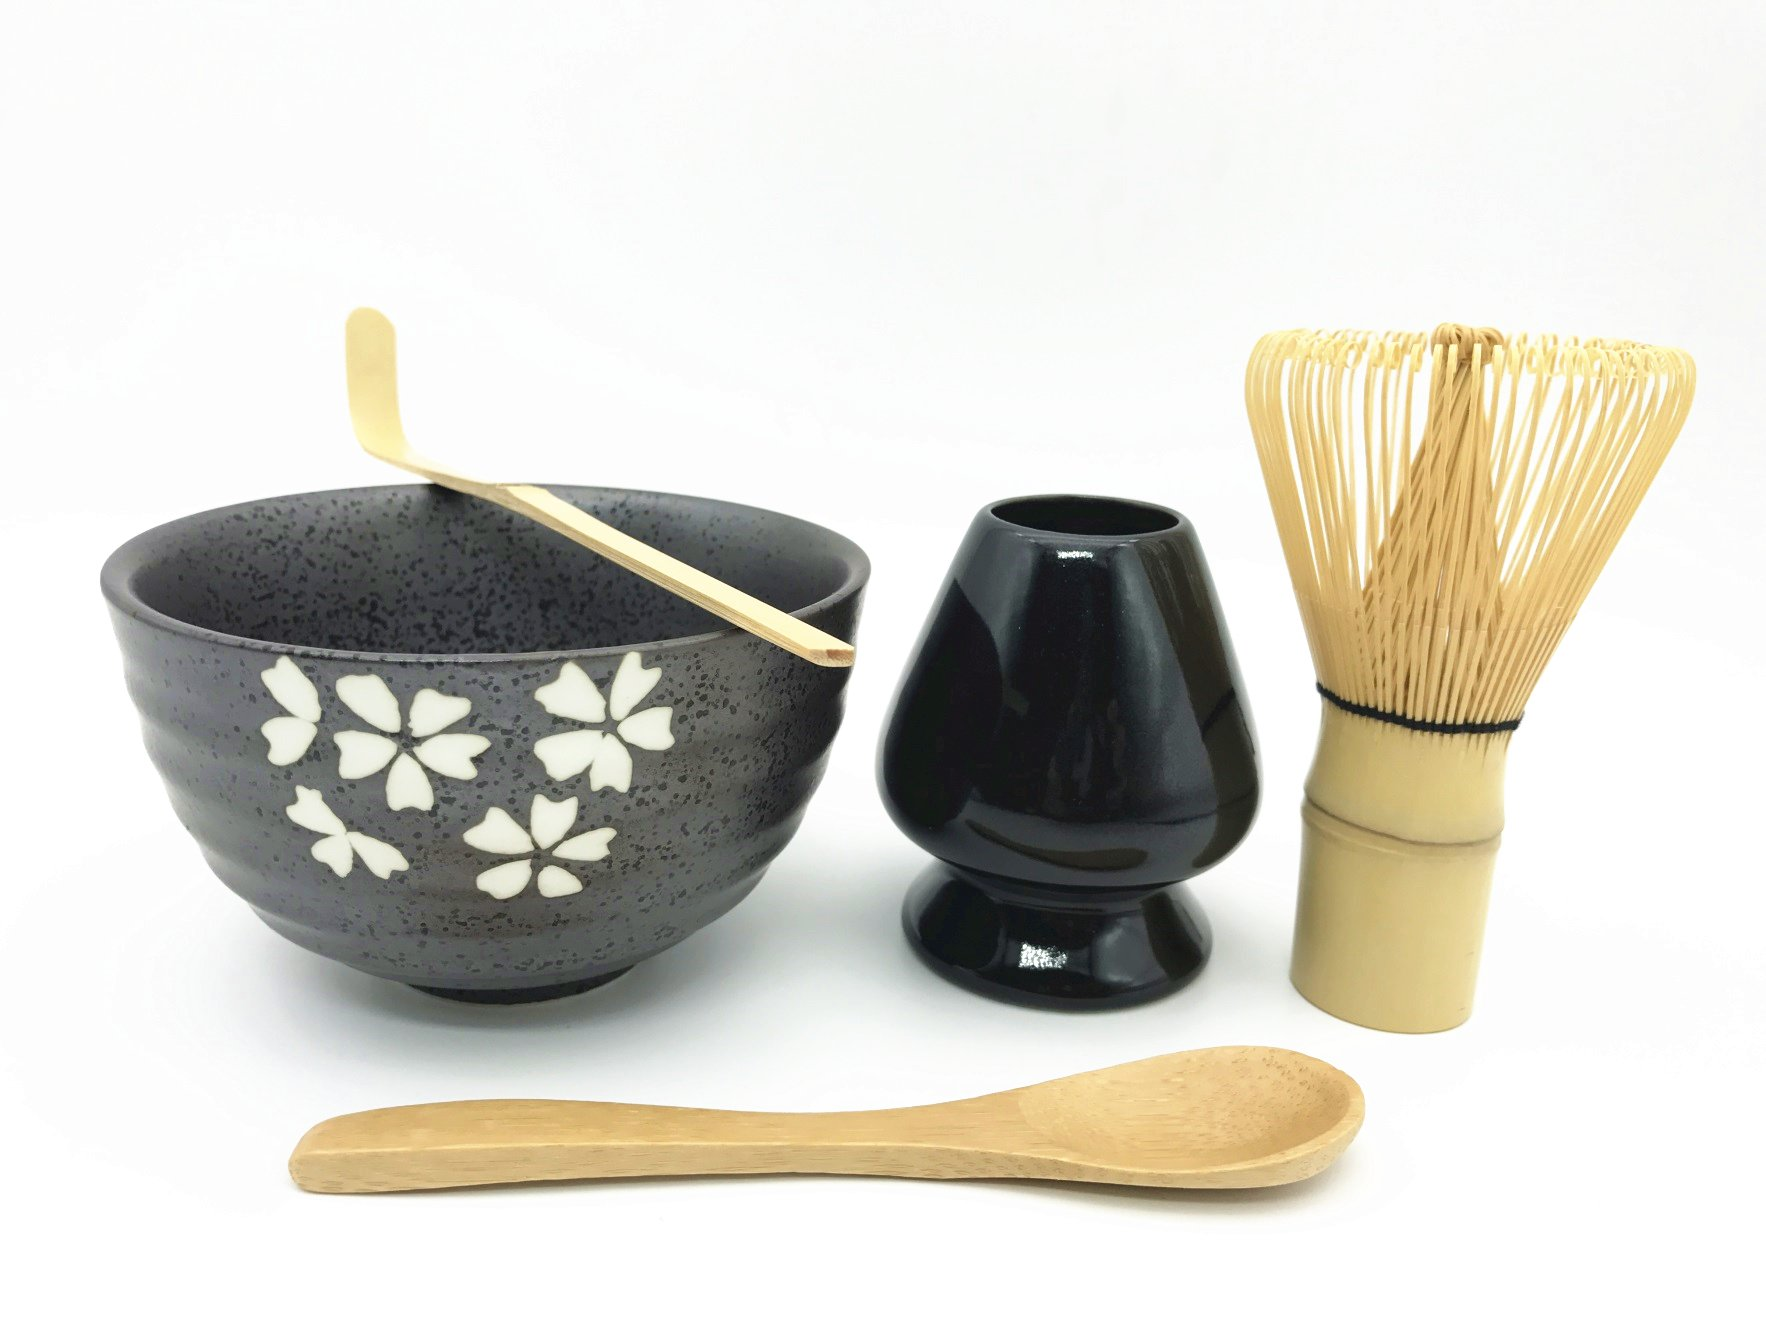 Home Soul Gift box Matcha Tea Ceremony Set,Include 5 Items:Bamboo Whisk Chasen,Whisk Holder,Bamboo Spoon & Scoop,Ceramic Matcha Bowl-Complete Matcha Start Up Kit (Black)